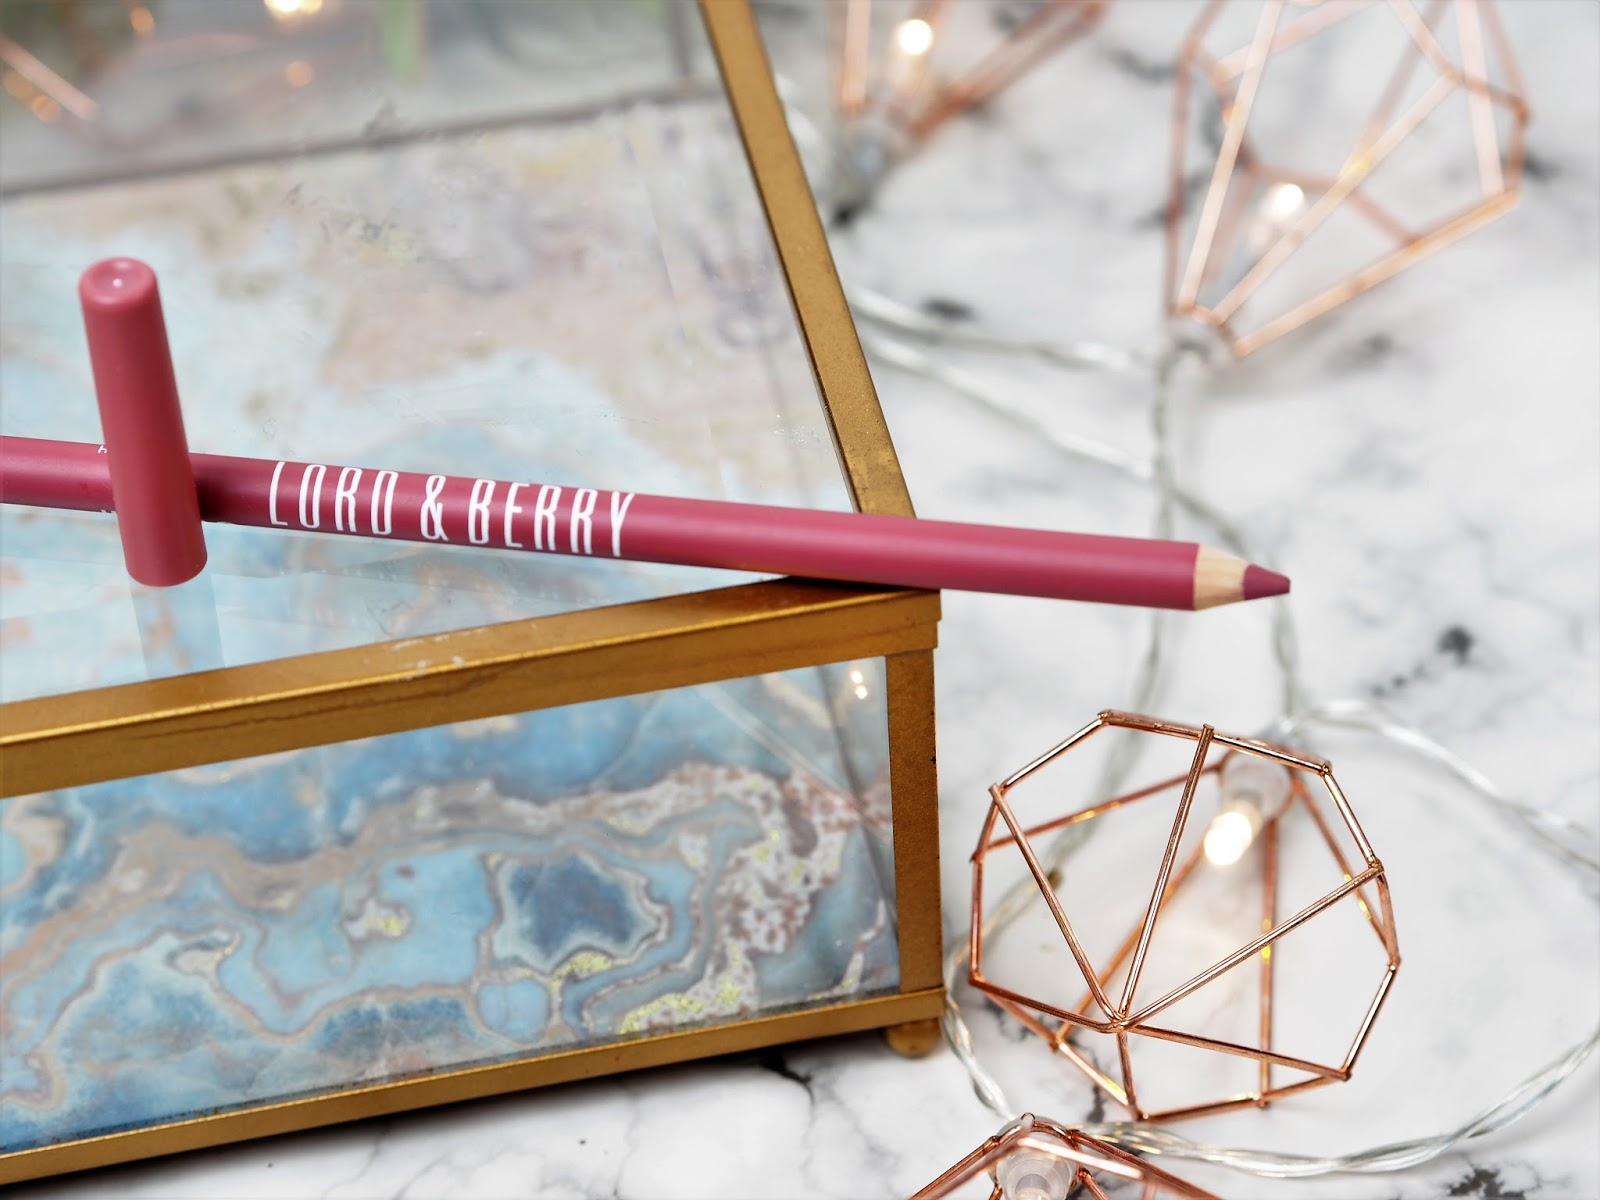 Lord & Berry Ultimate Lip pencil in Romantic Rose #3040